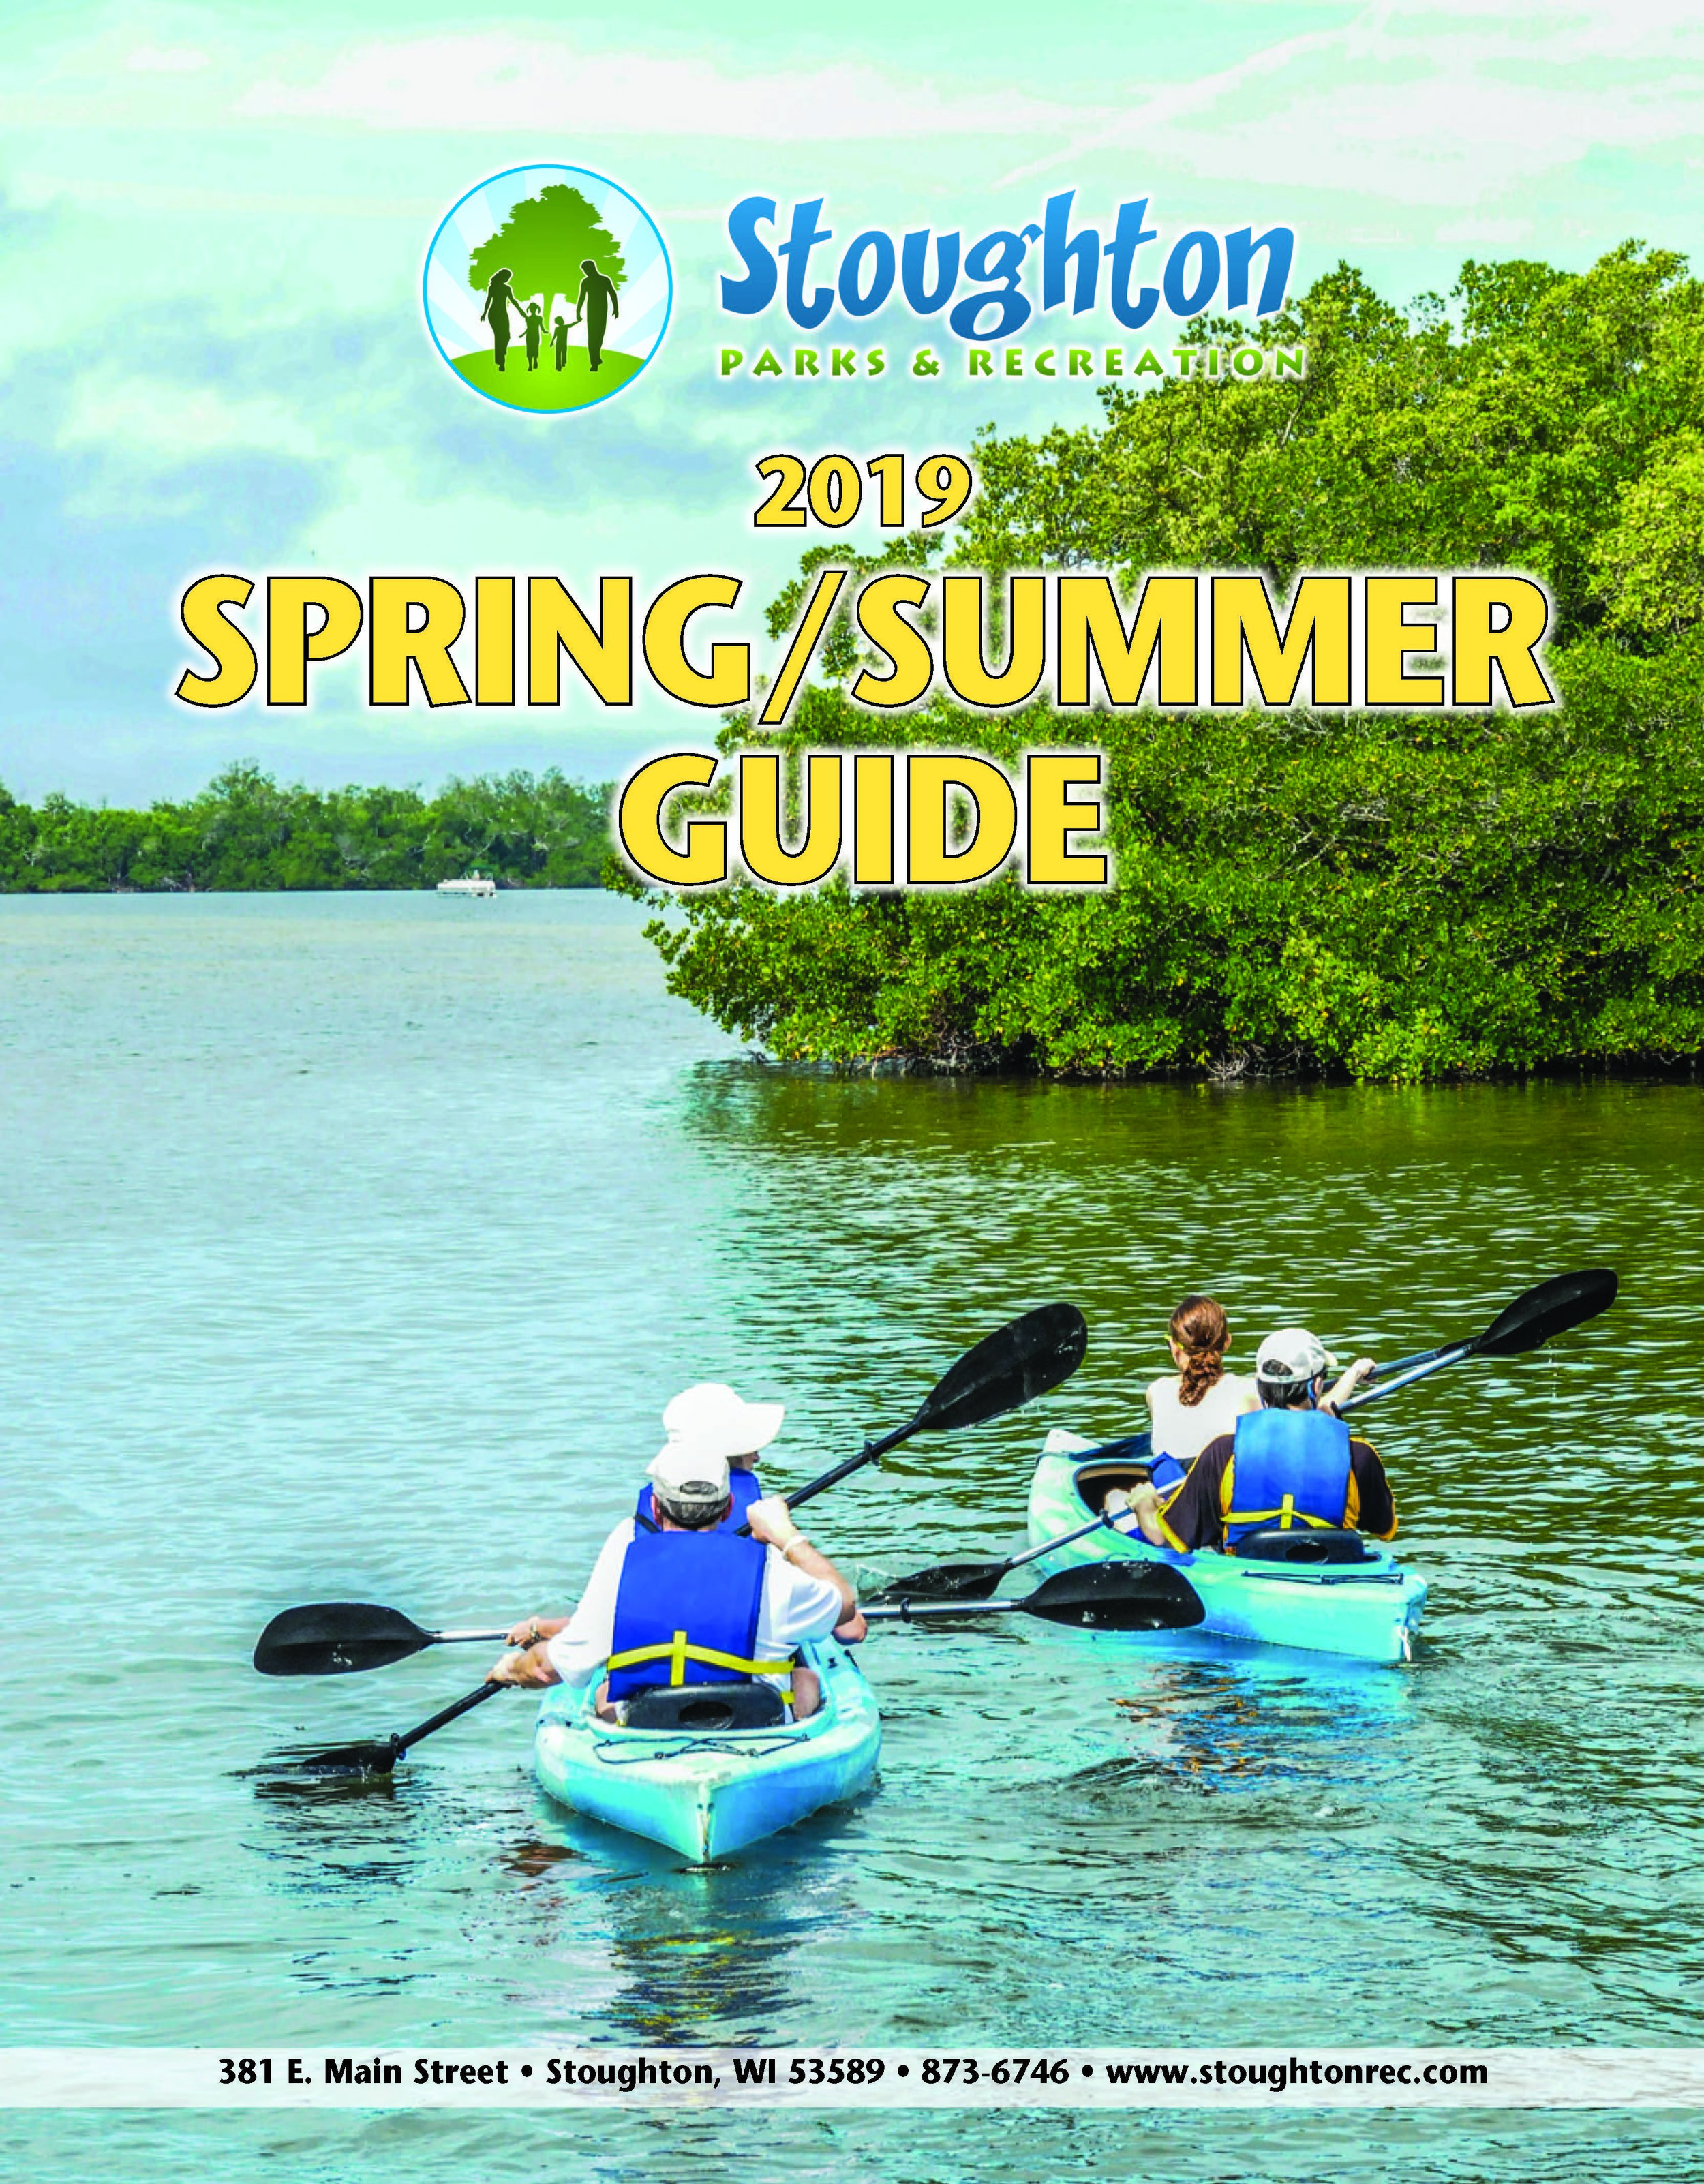 2019 Spring-Summer Stoughton Rec Guide.jpg